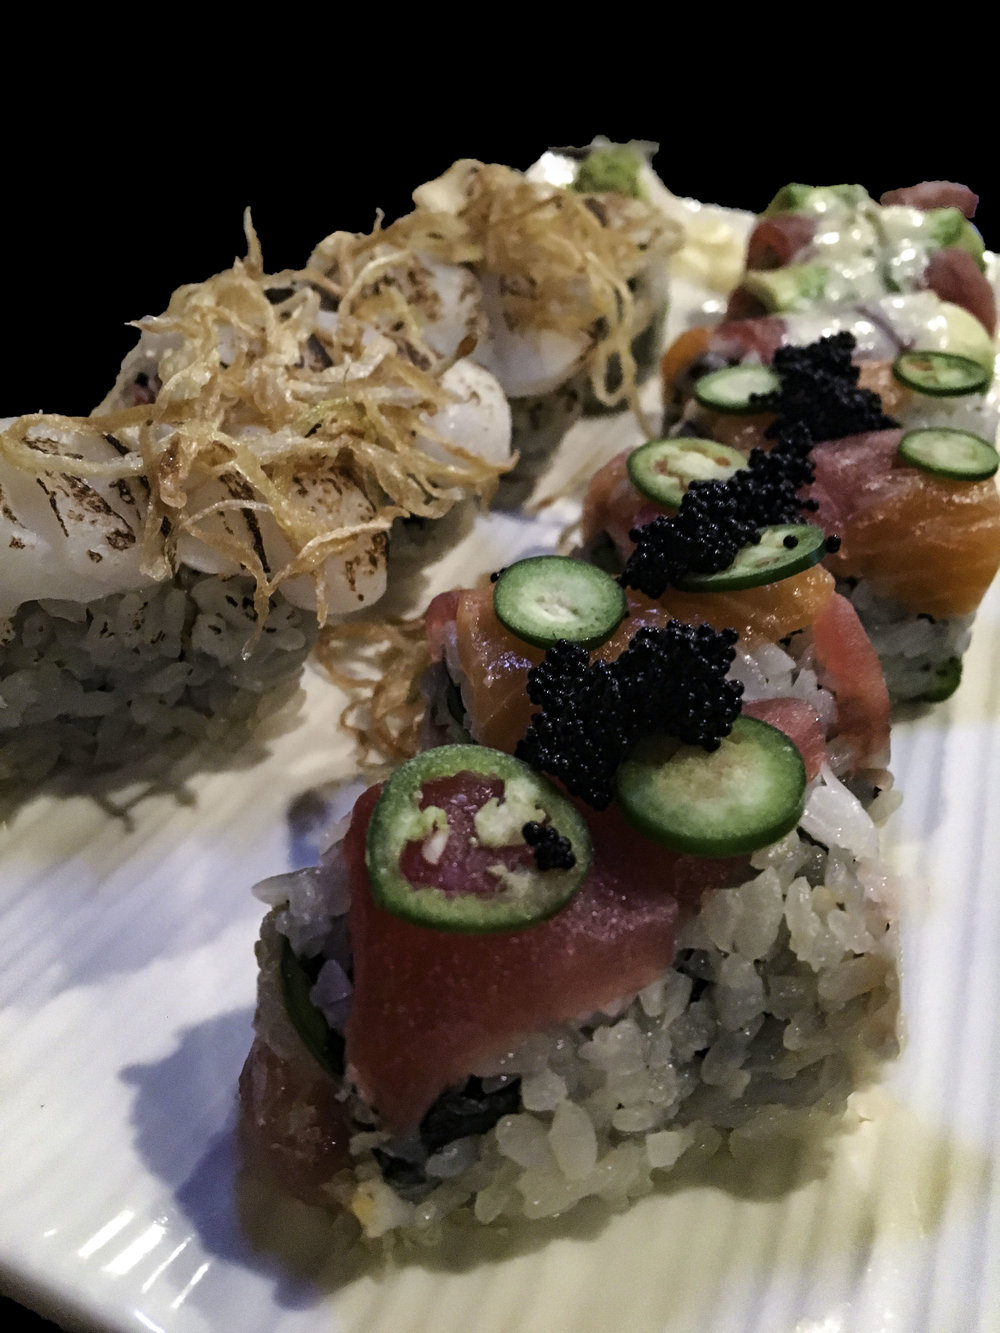 Left - Port Washington Roll - Crunchy spicy king crab topped with seared scallop, onion and yuzu truffle soy  Right - Kiss of Fire Roll - Crunchy spicy yellowtail topped with tuna, salmon,  jalapeño, and fish eggs